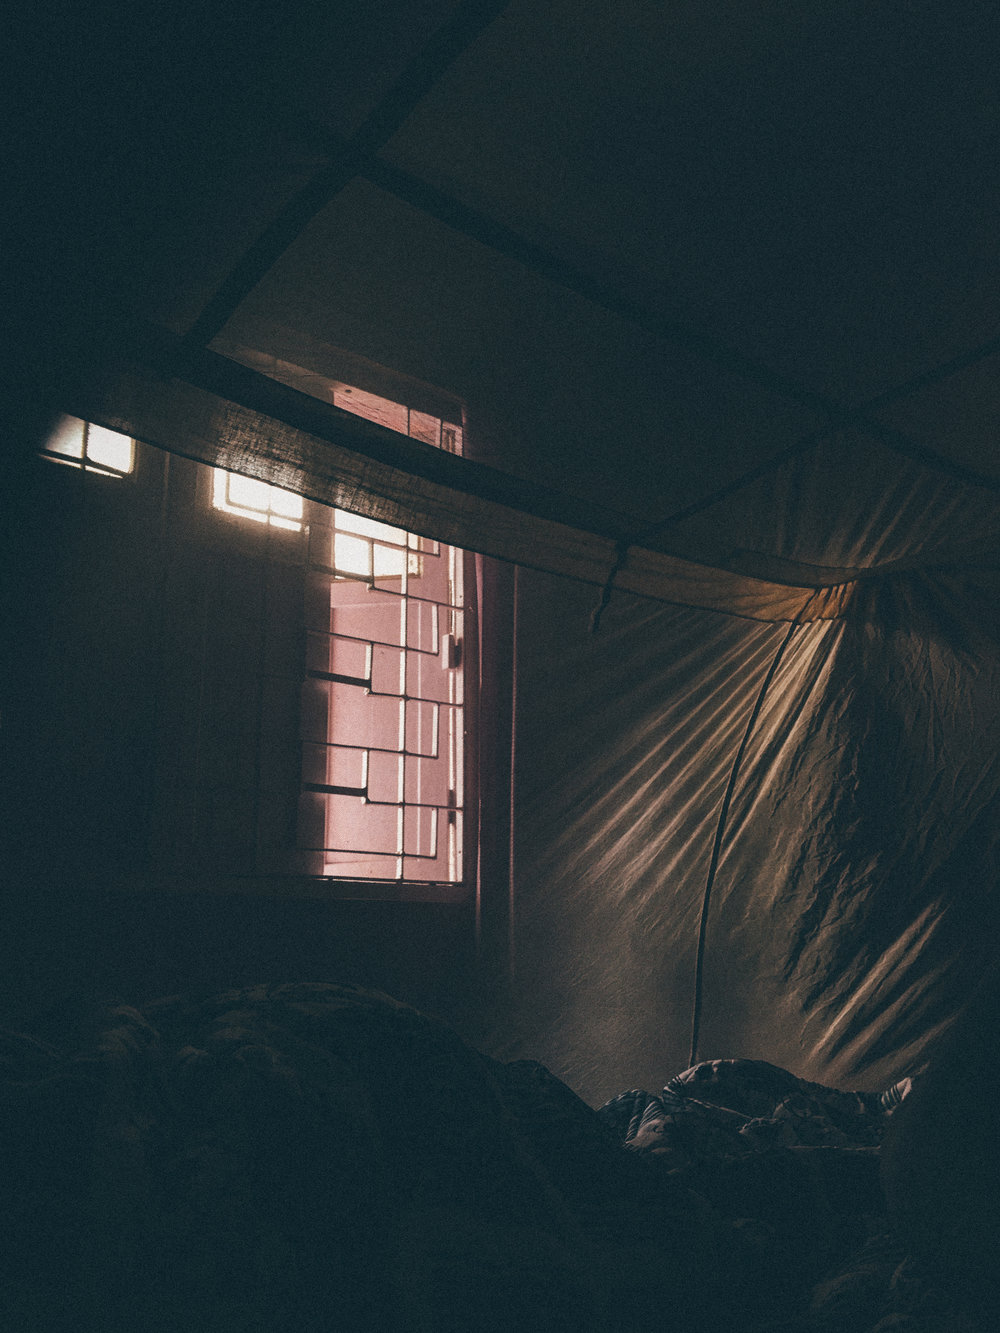 Sleepy mornings under the mosquito net.